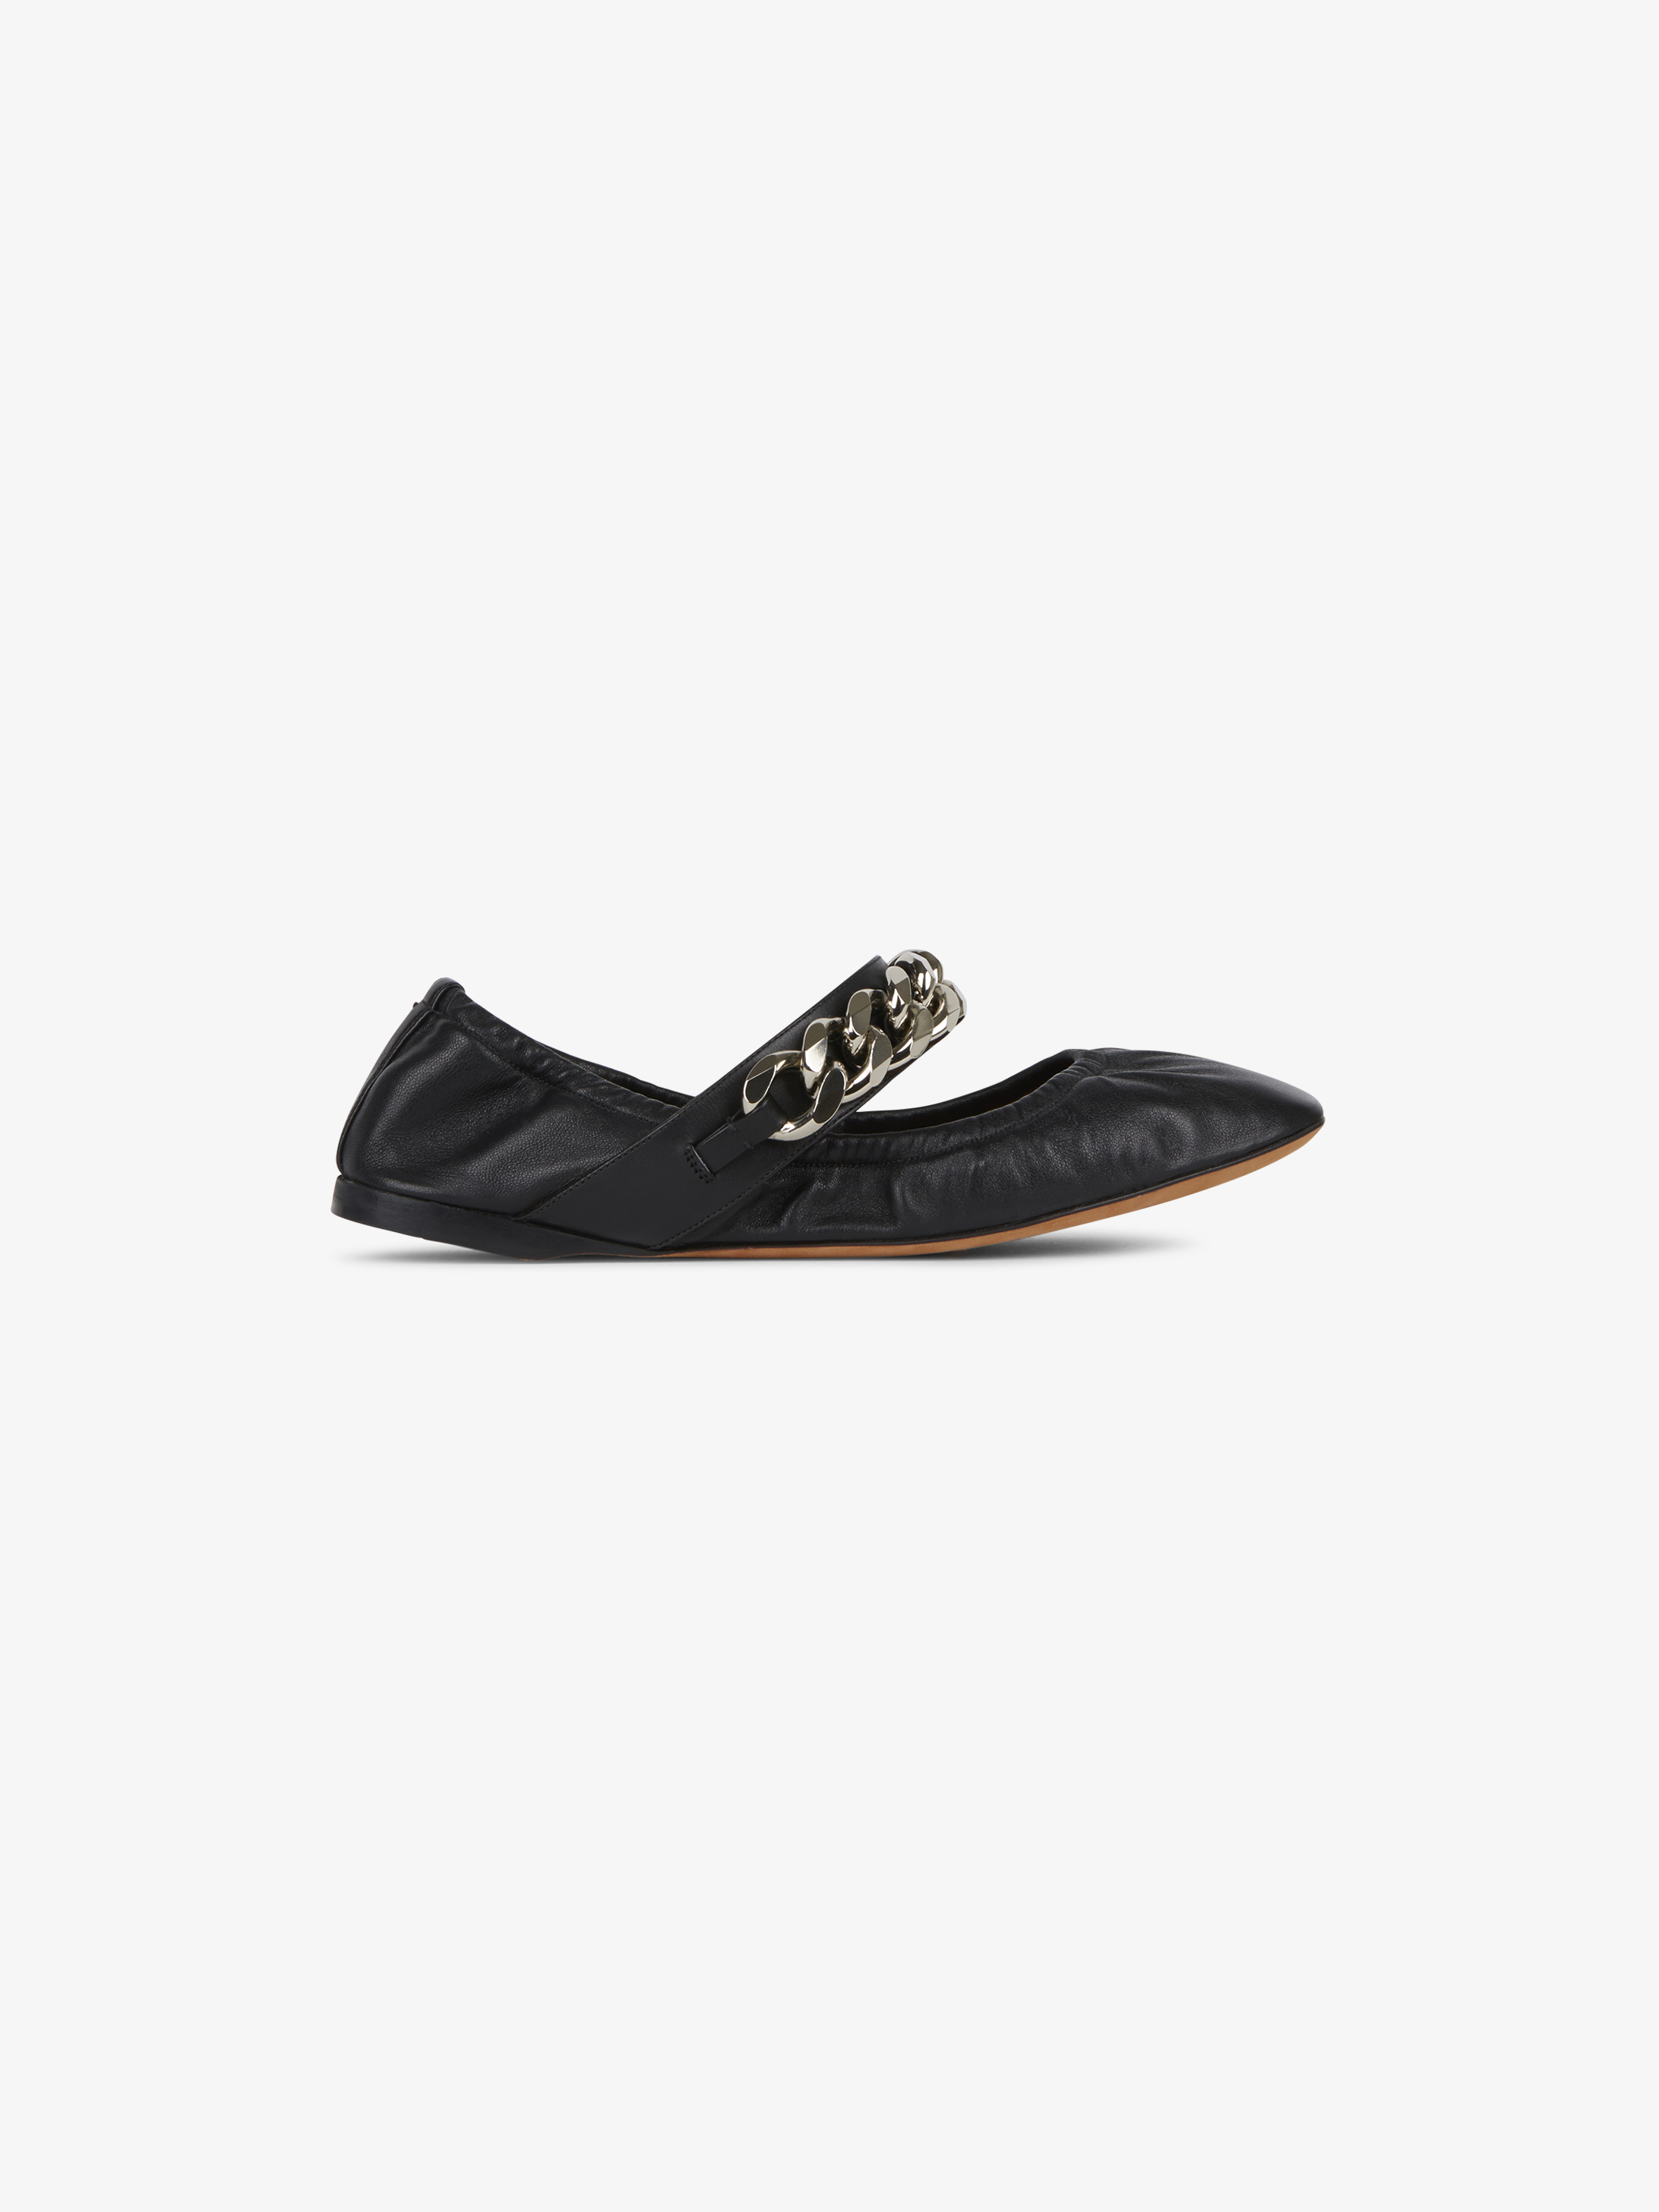 Chain soft leather ballerinas